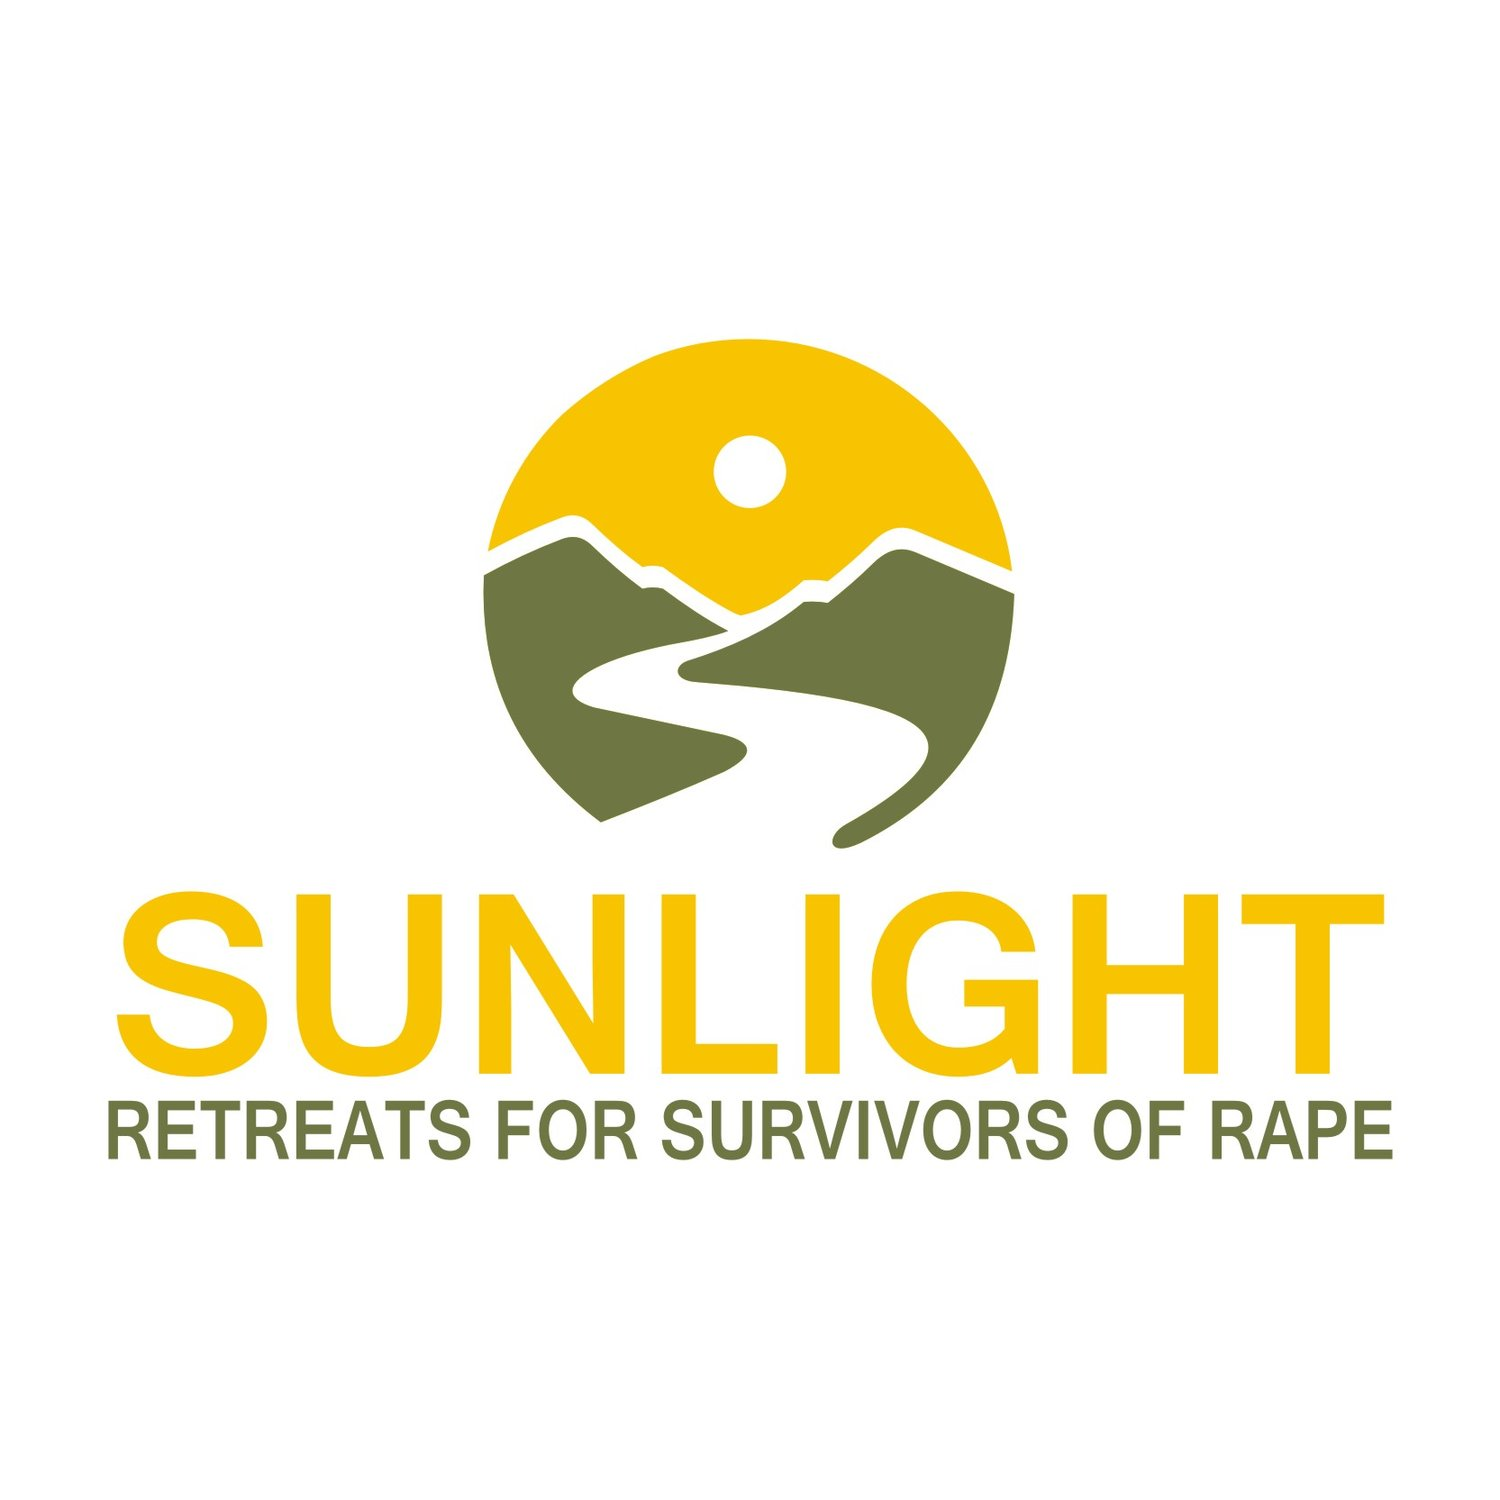 Sunlight Retreats: Bringing Sunlight To Survivors Of  Rape